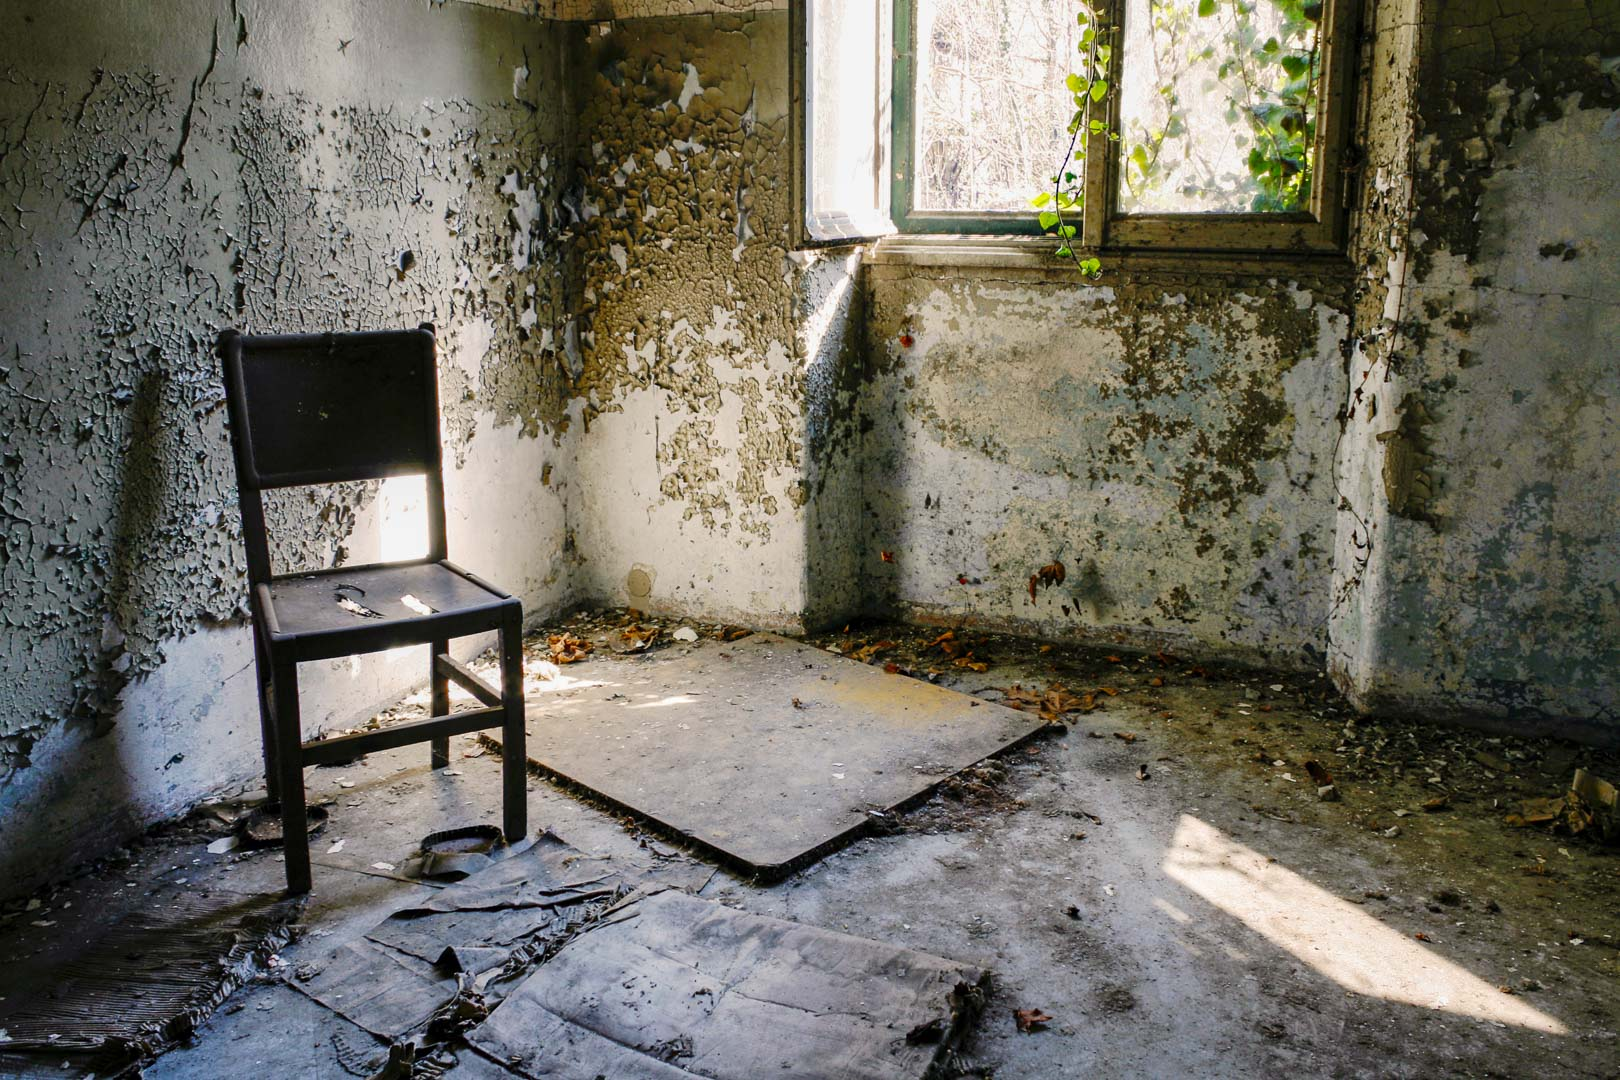 Abandoned Mental Hospital – Vercelli, Italy